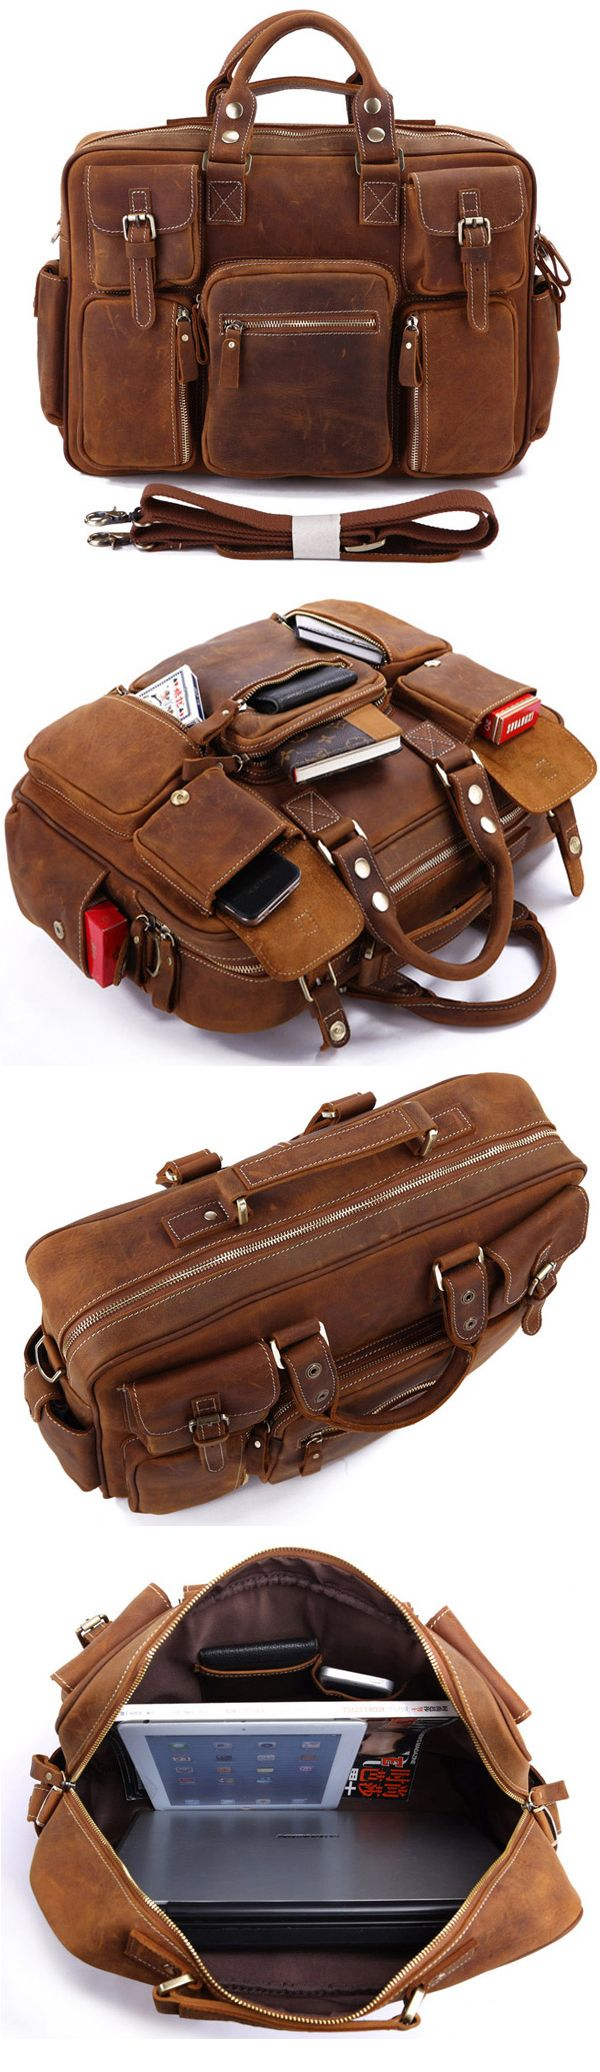 be3884e98cbb Rare Crazy Horse Leather Men s Briefcase Laptop Bag Dispatch Shoulder Huge  Duffle in Red Brown .